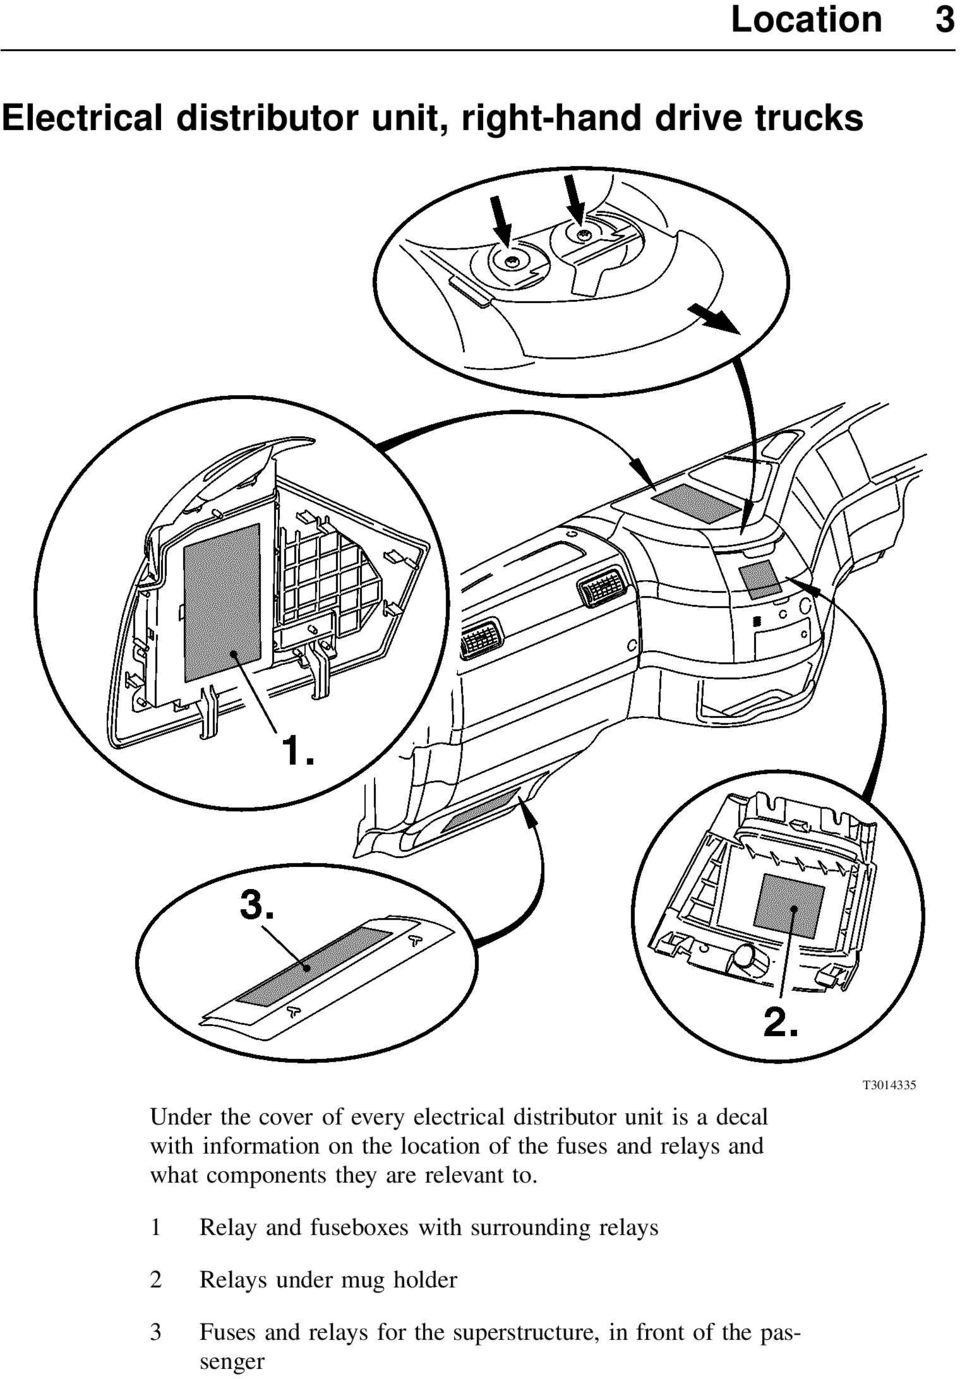 Operating Instructions Fuses and relays T - PDF